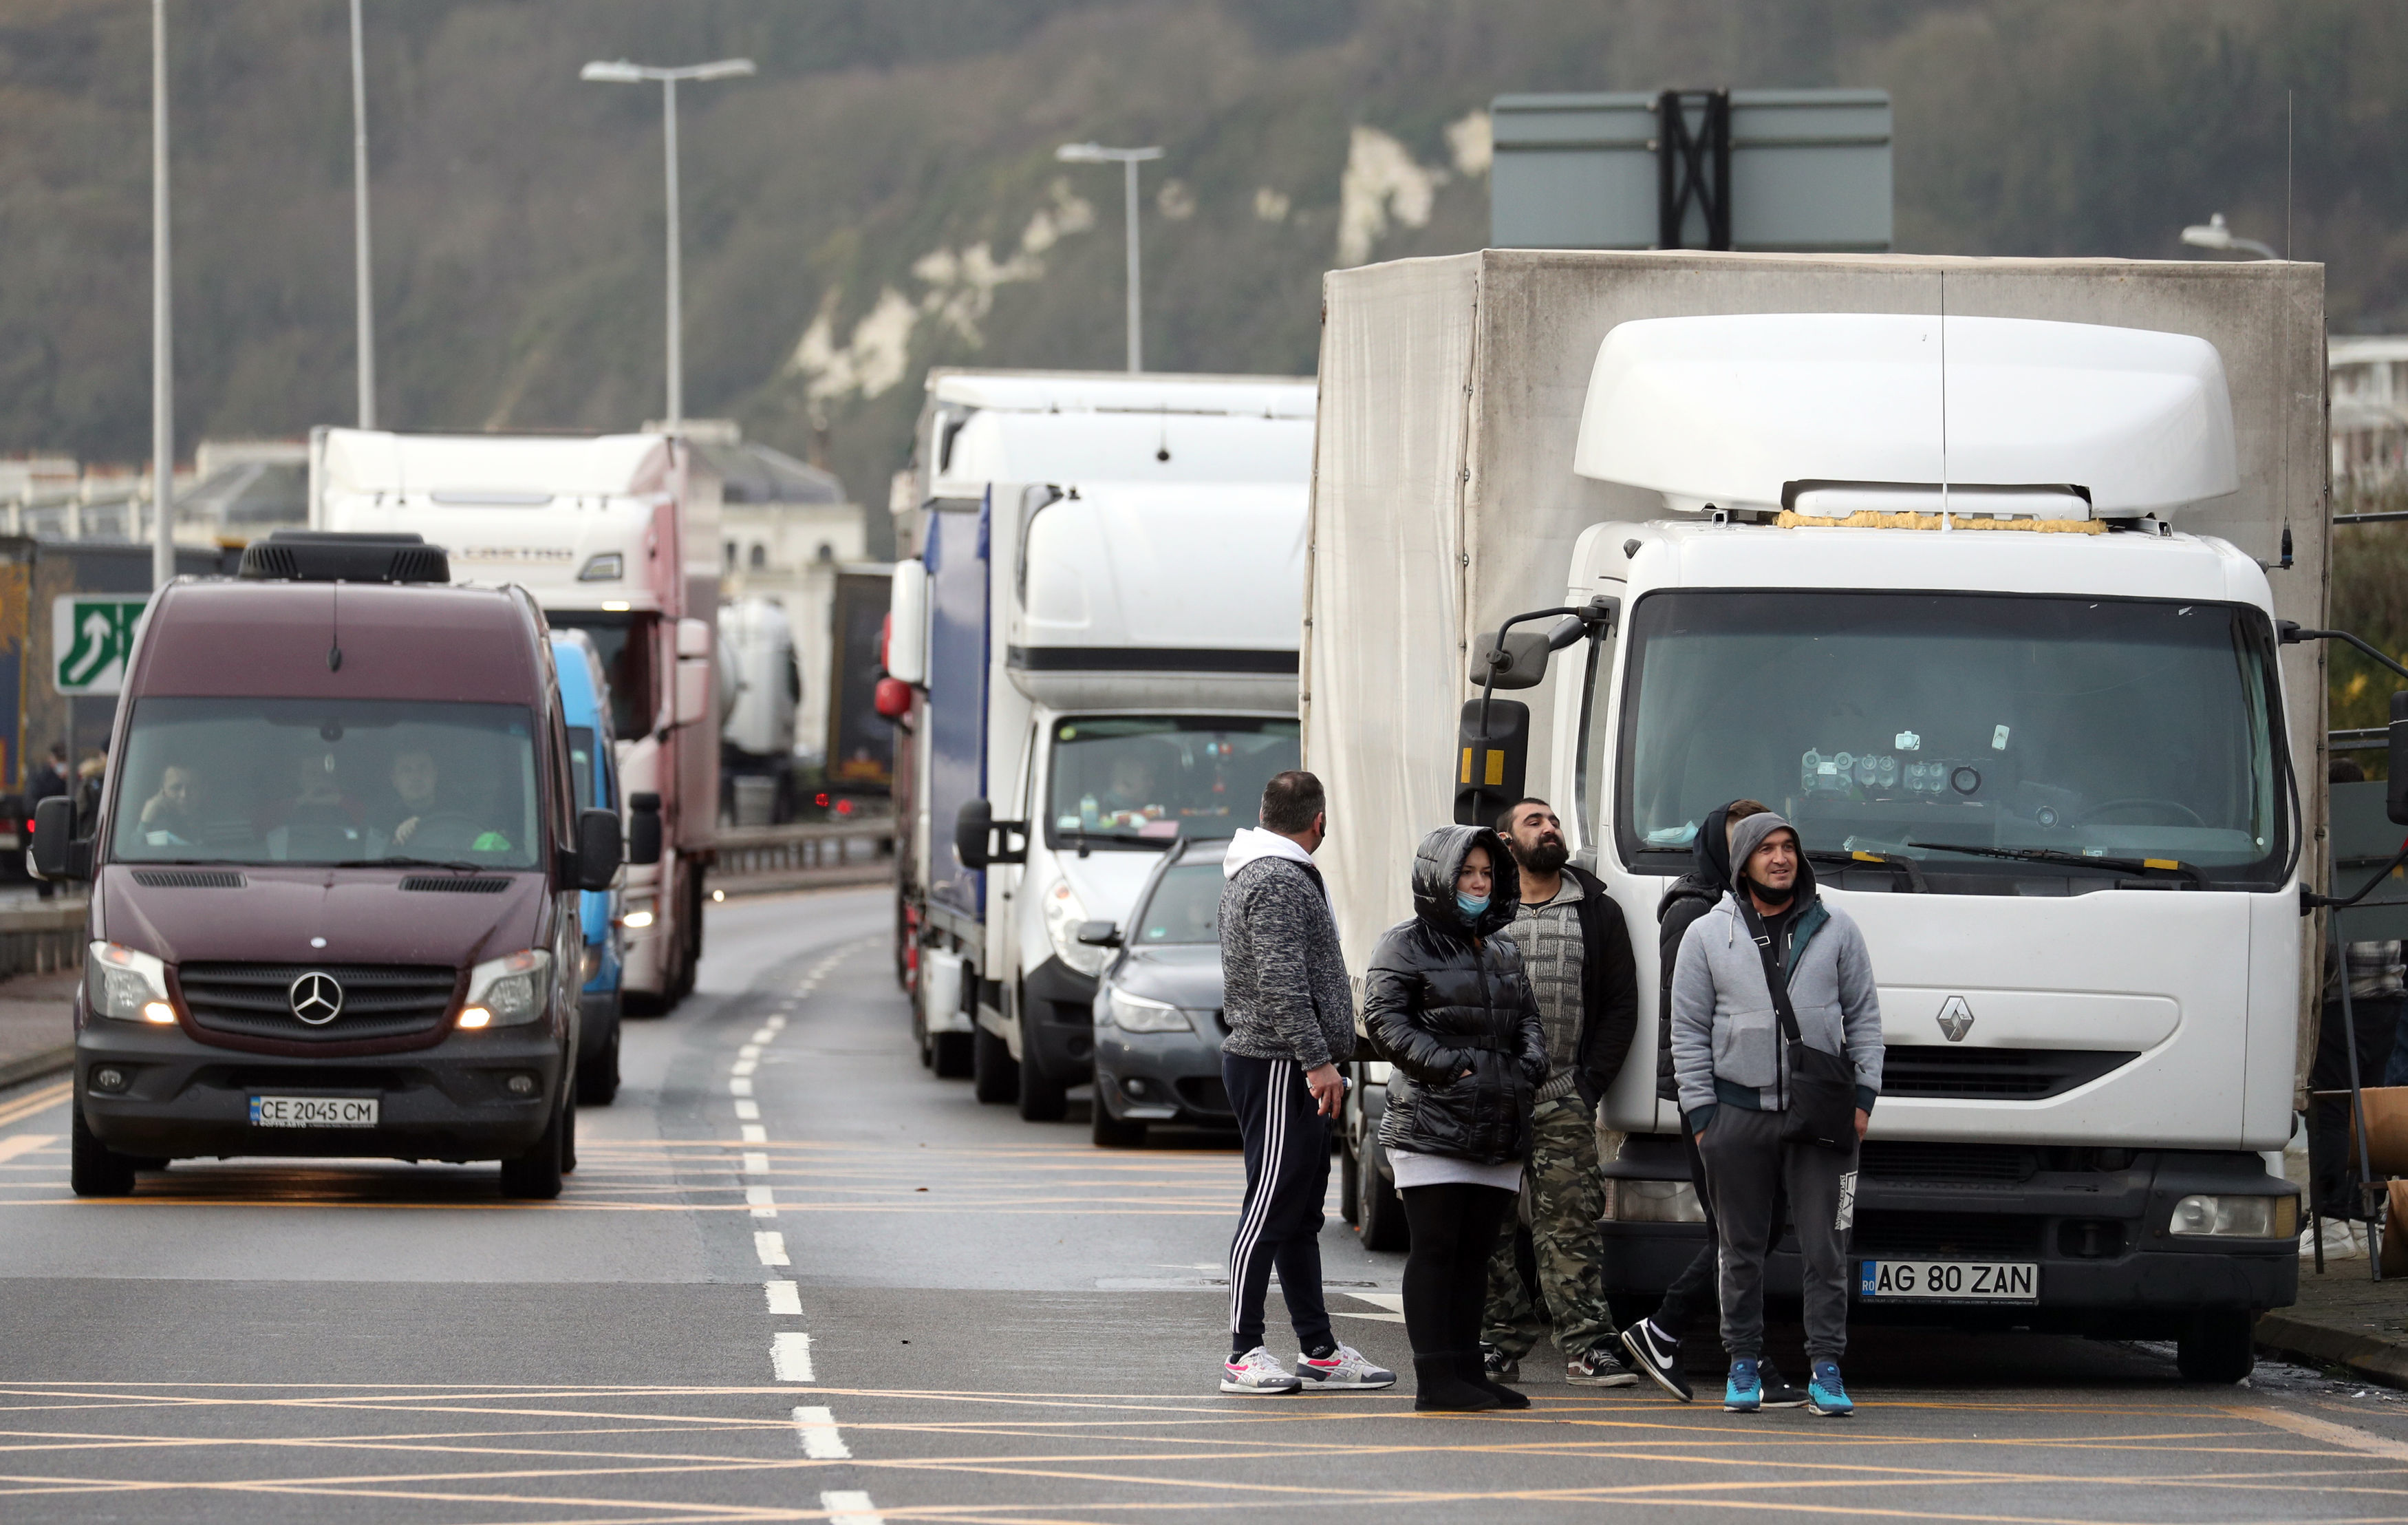 Vehicles parked up outside the entrance to the Port of Dover